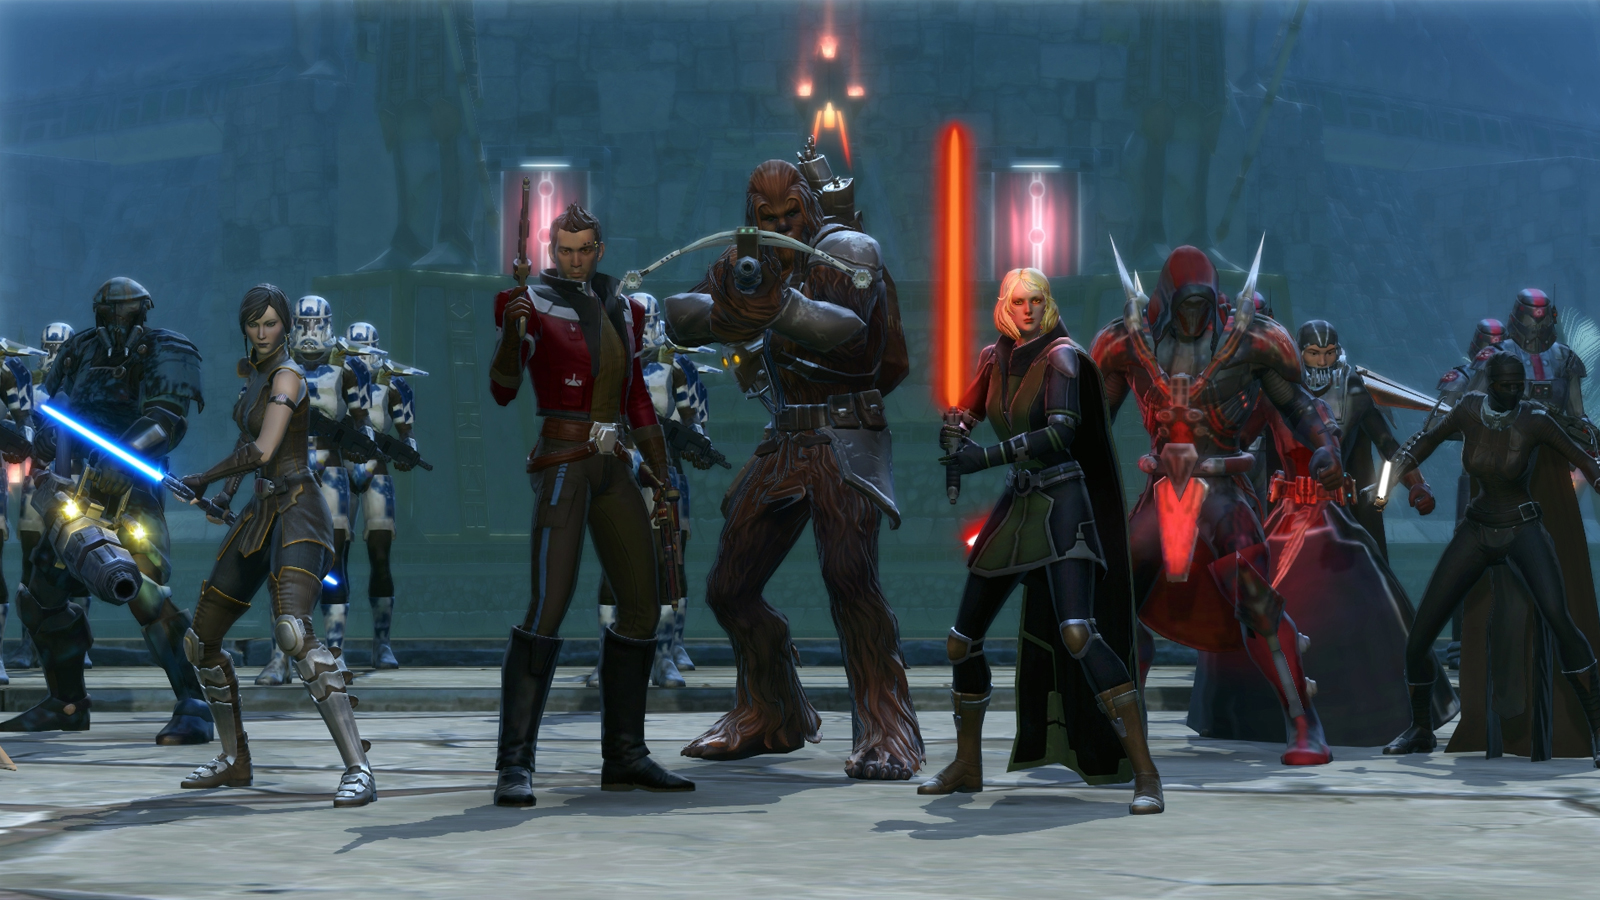 Star Wars: The Old Republic deserves a second chance